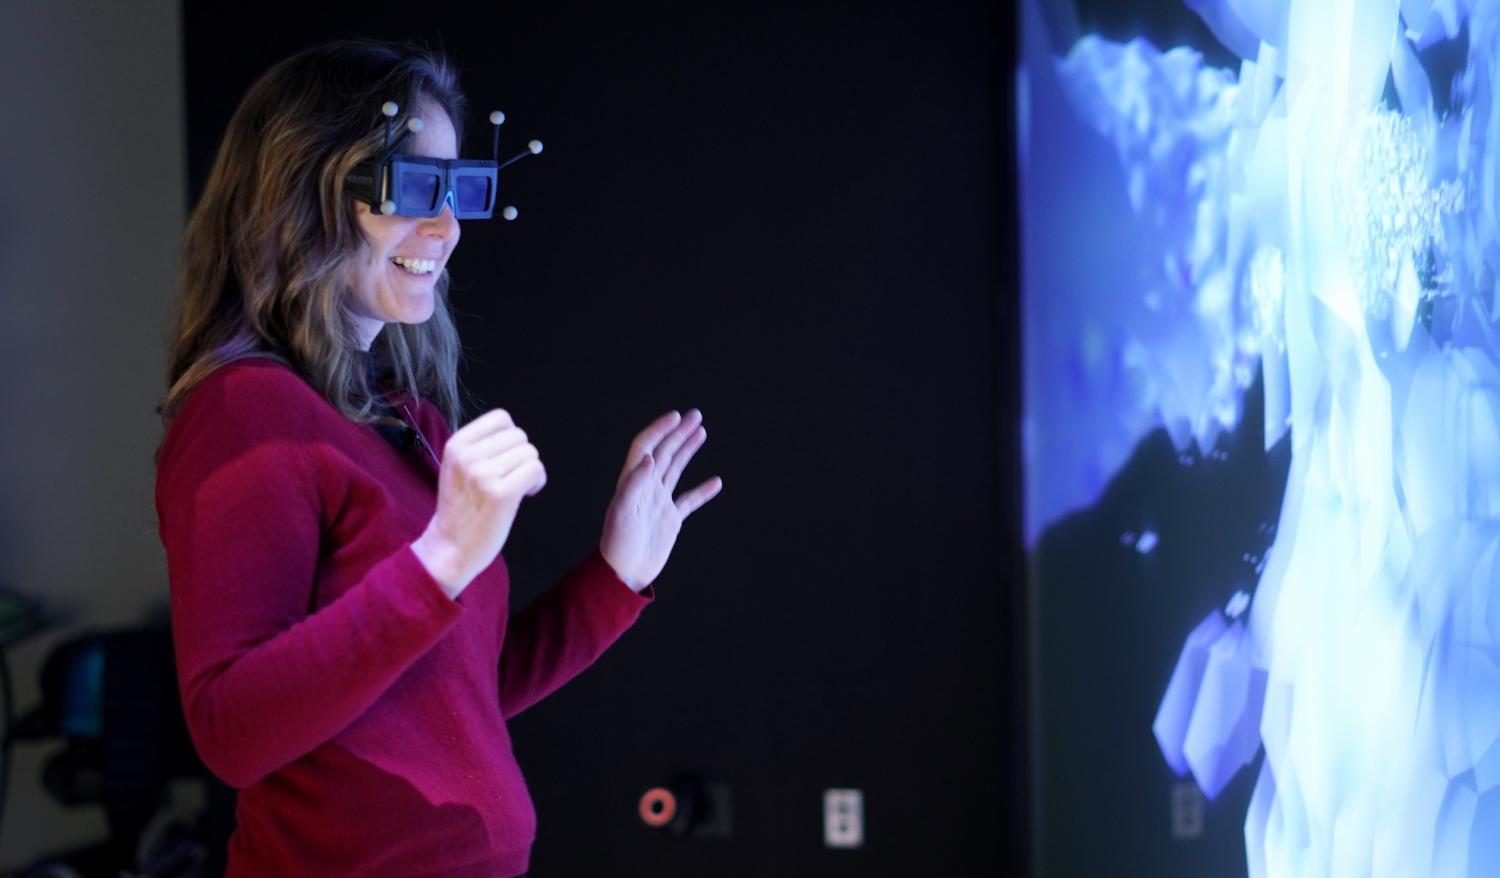 Scripps fellow wearing augmented reality goggles